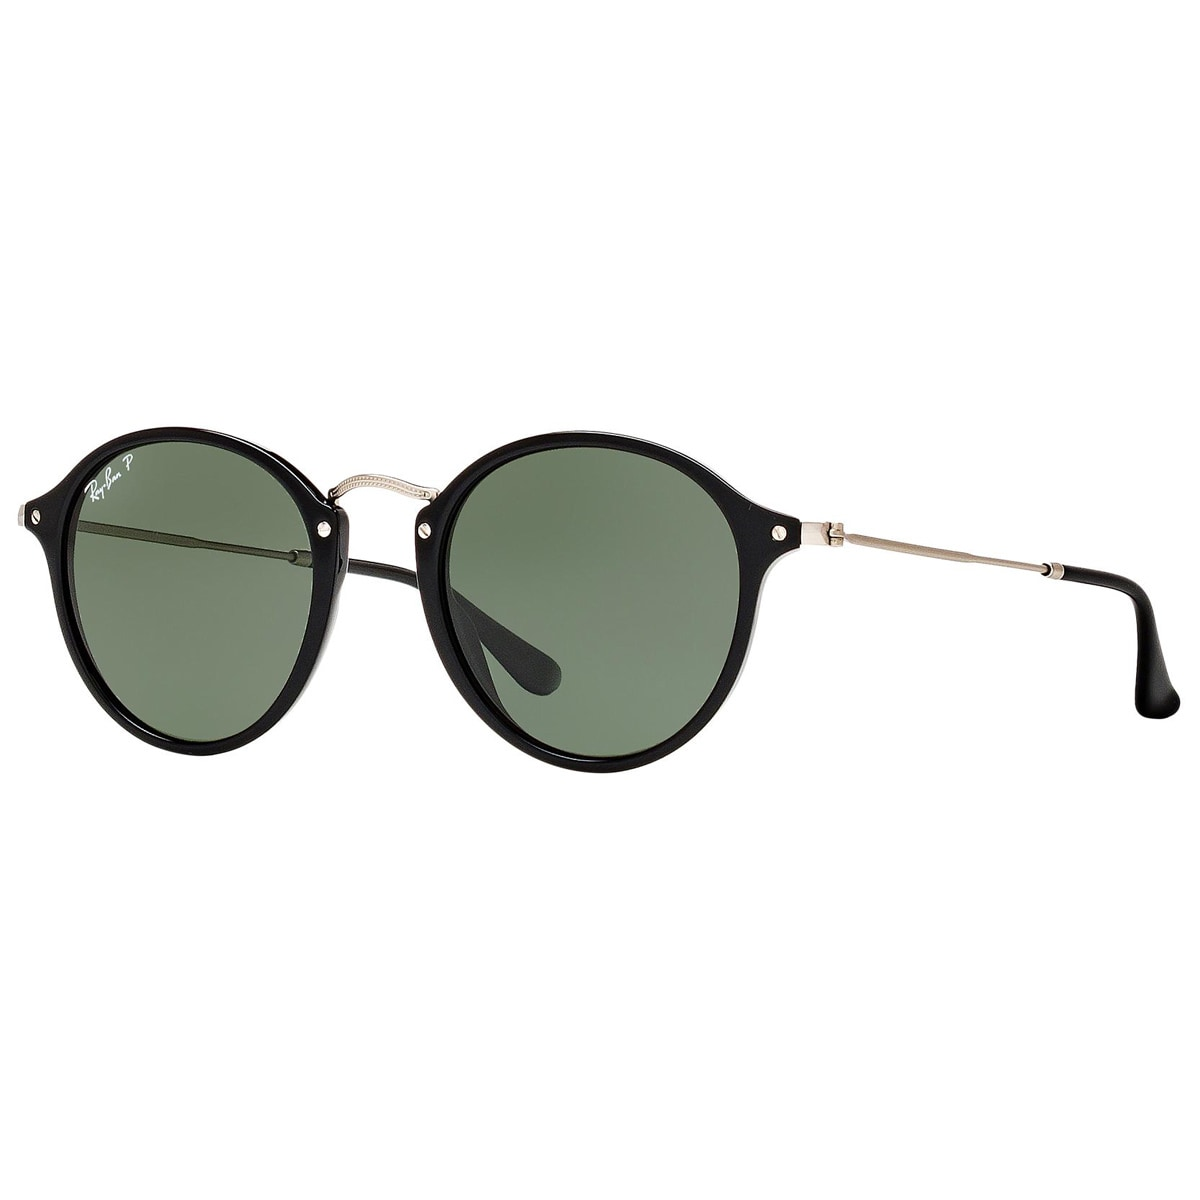 86e933fceed2 Shop Ray-Ban Round Fleck RB2447 901/58 Unisex Black/Silver Frame Polarized  Green Lens Sunglasses - Free Shipping Today - Overstock - 13467362